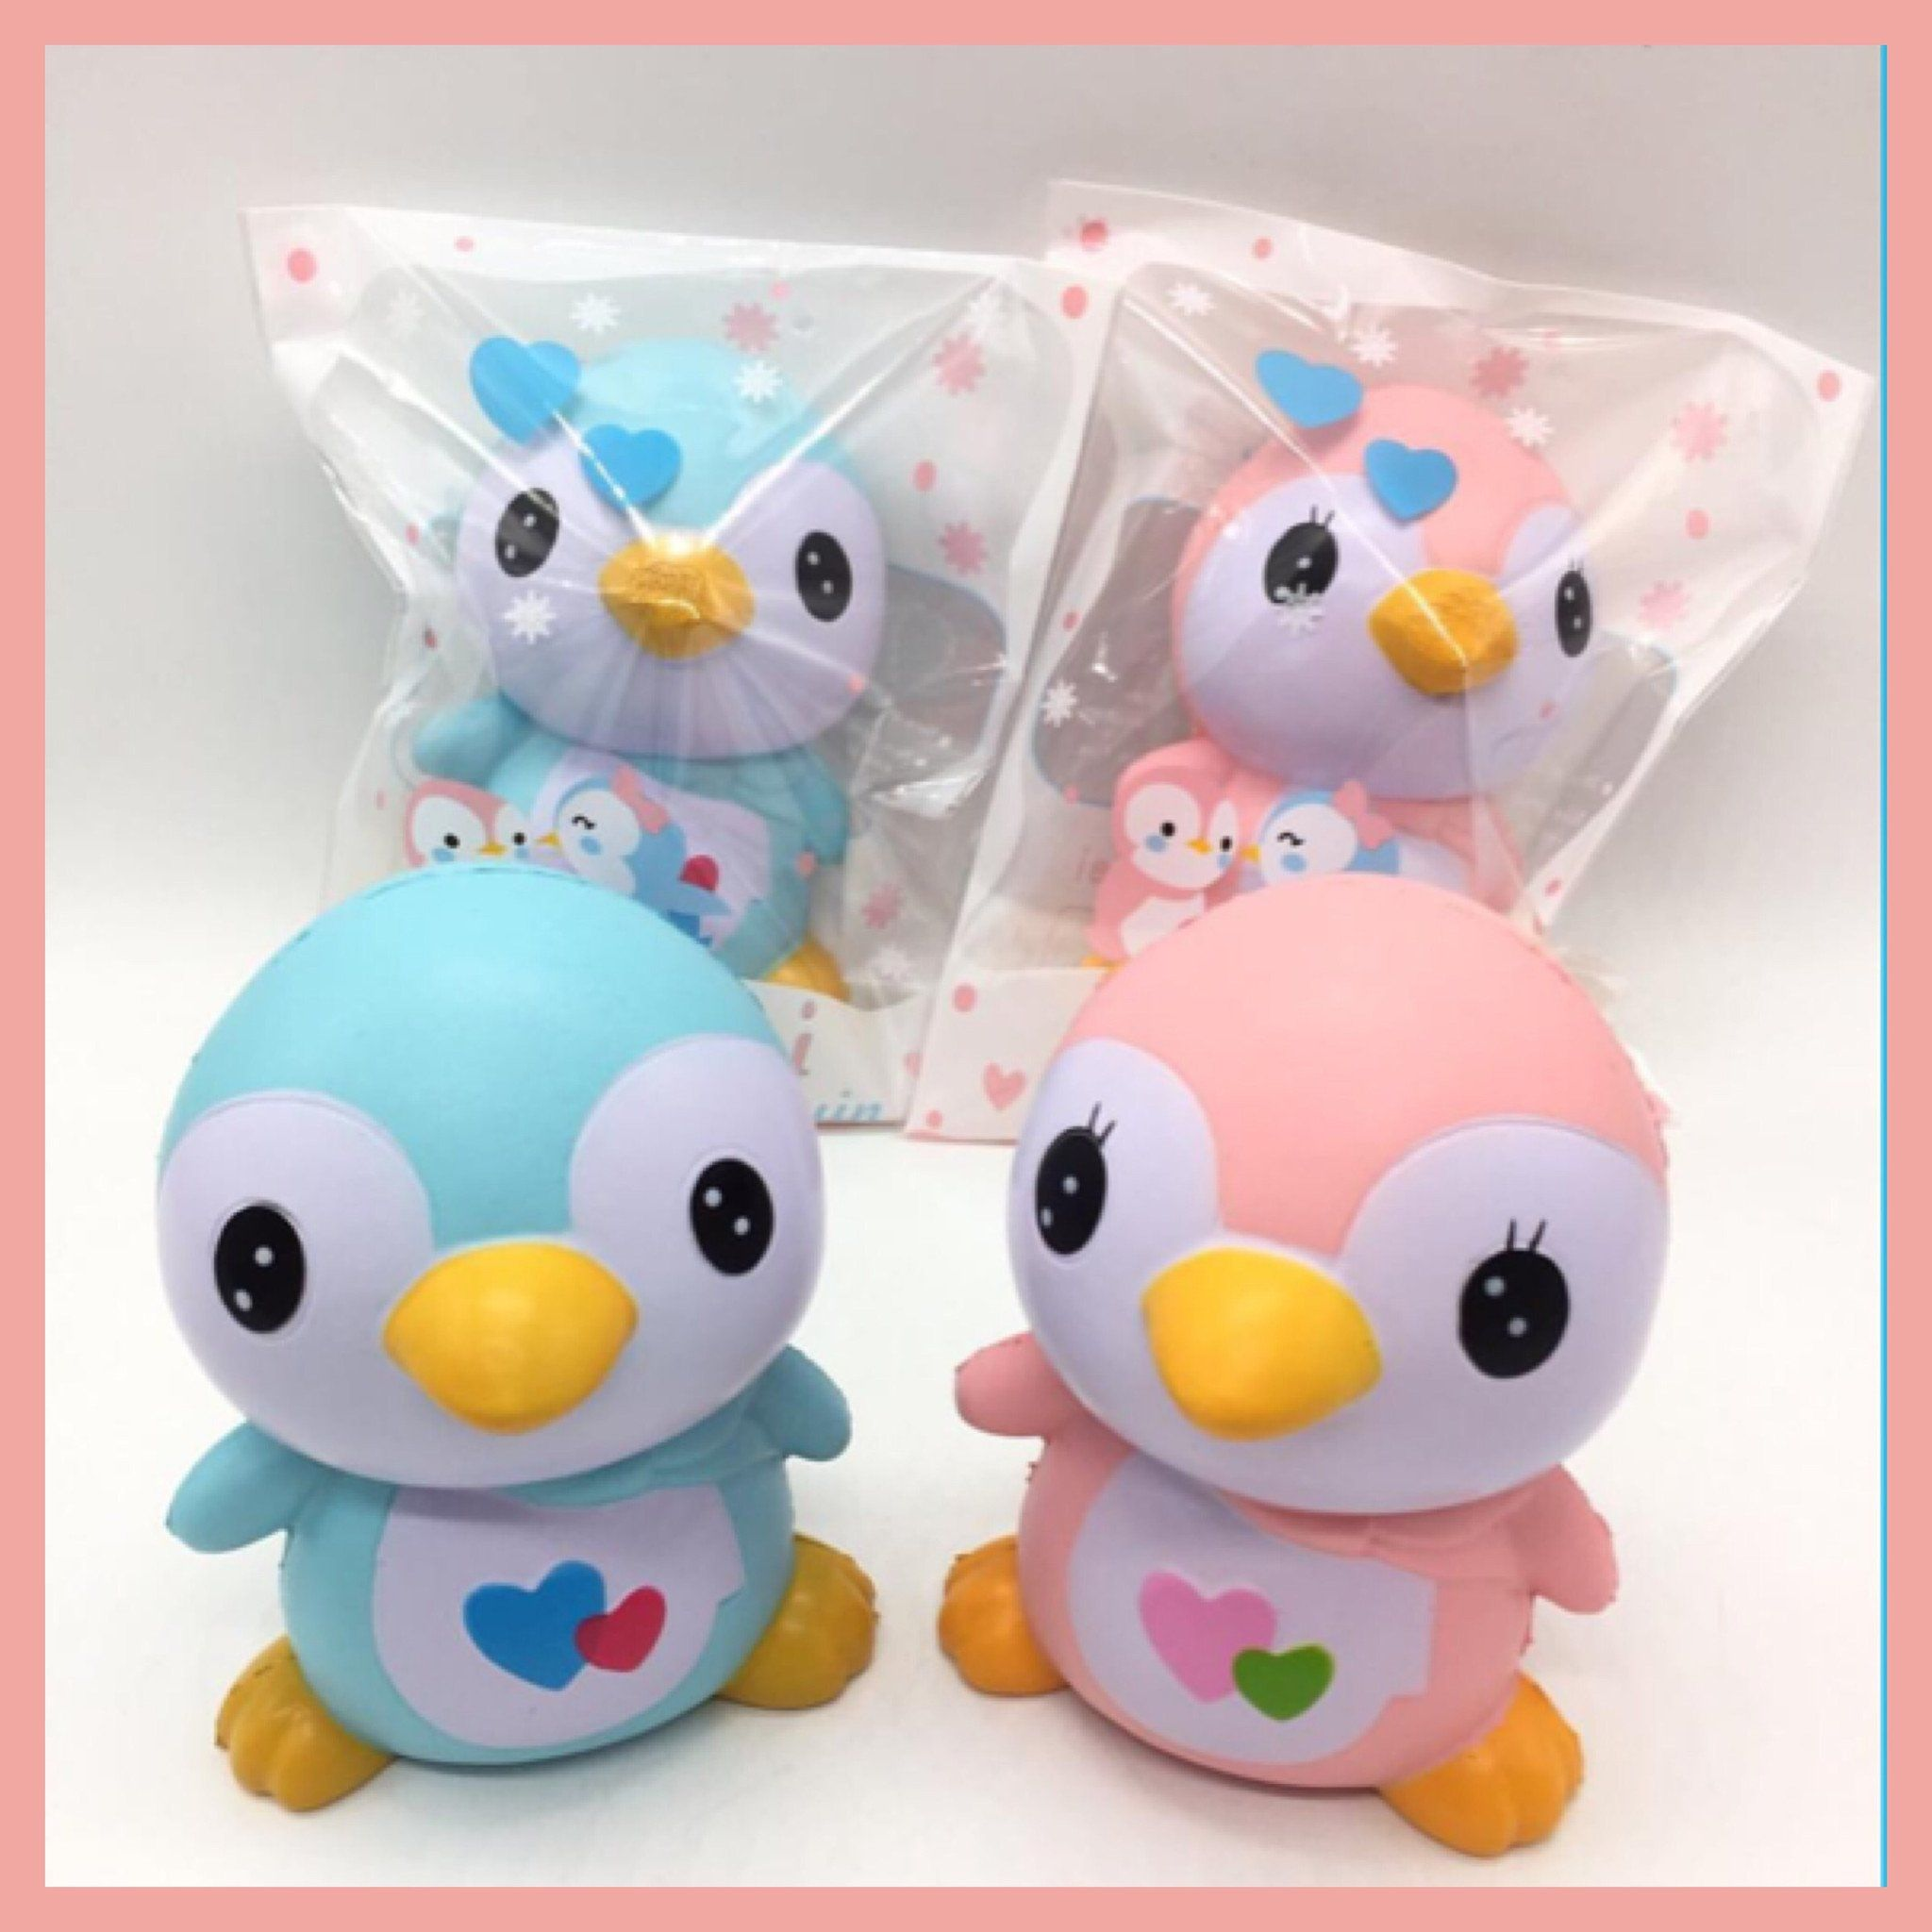 Penguin Squishies Penguins, Squishies and Slime